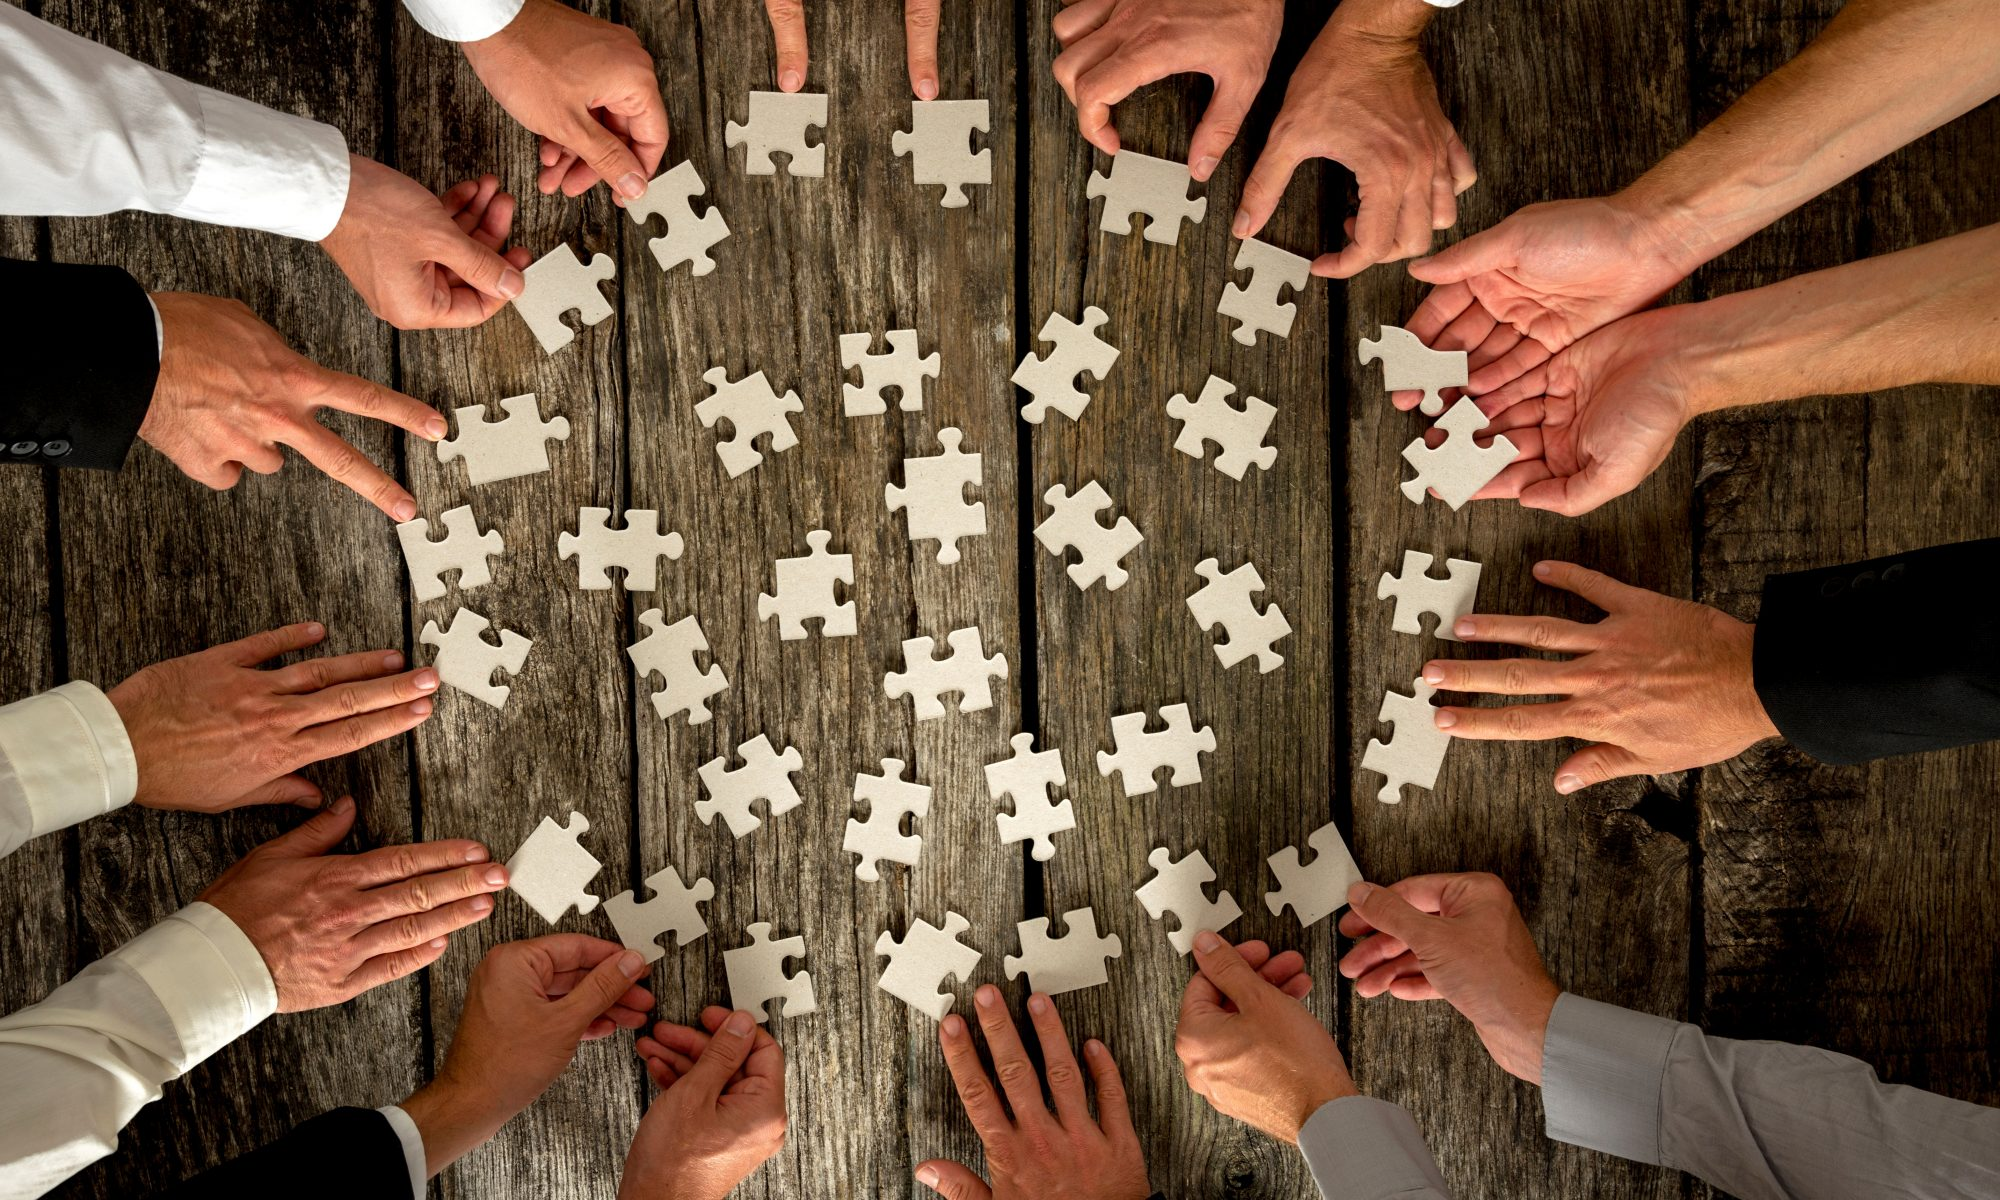 Hands with puzzle pieces for team building